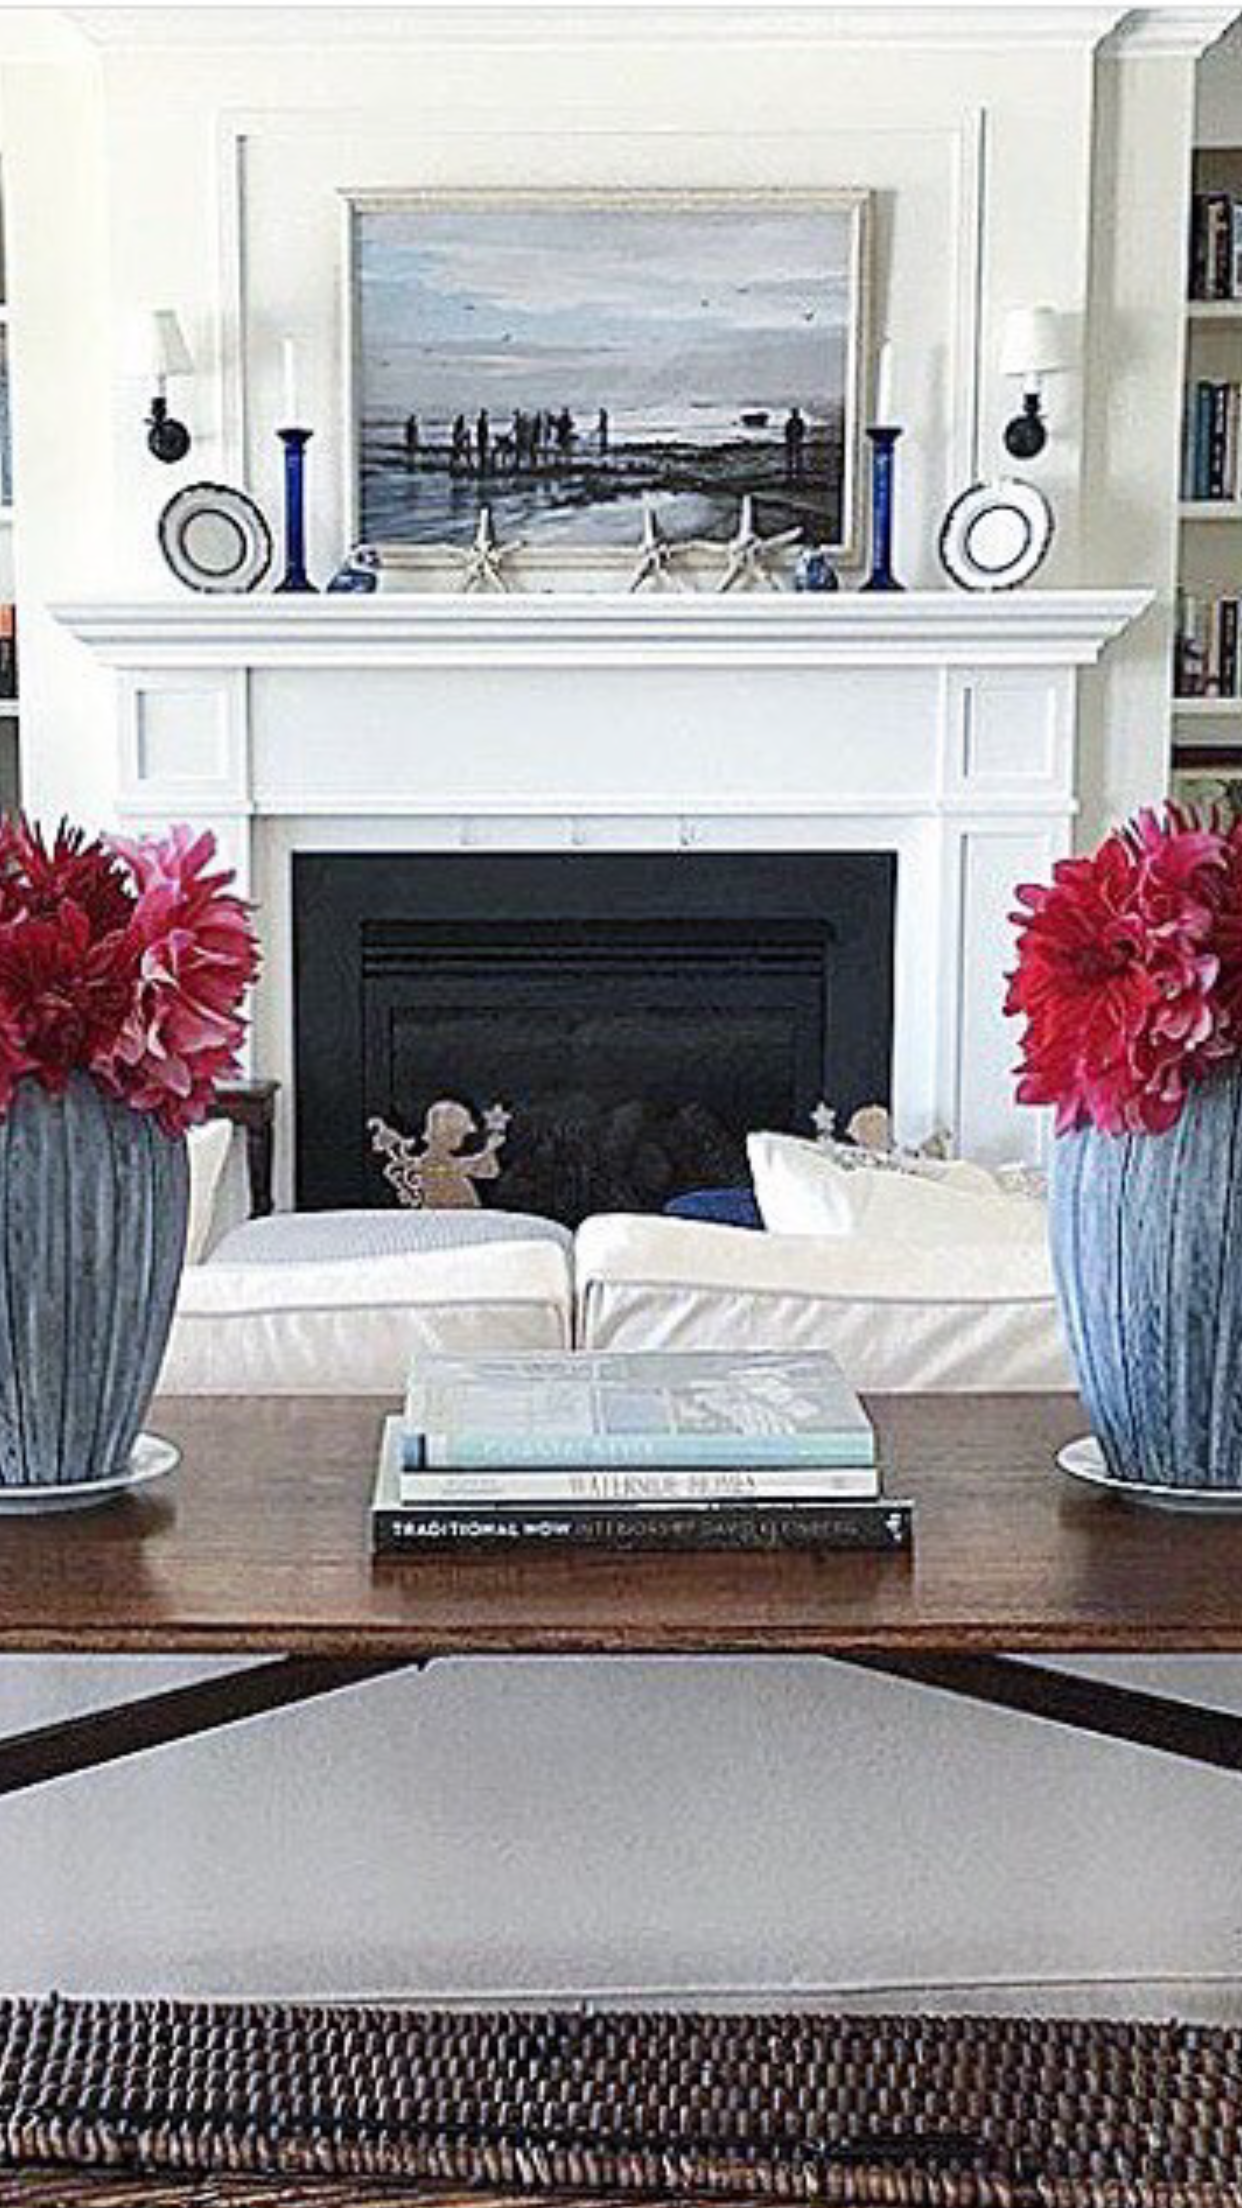 Fireplace Mantel Concept Remove Existing Corbels And Add Square Molding Paint To Match Trim Fireplace Interior Design Projects Fireplace Mantels